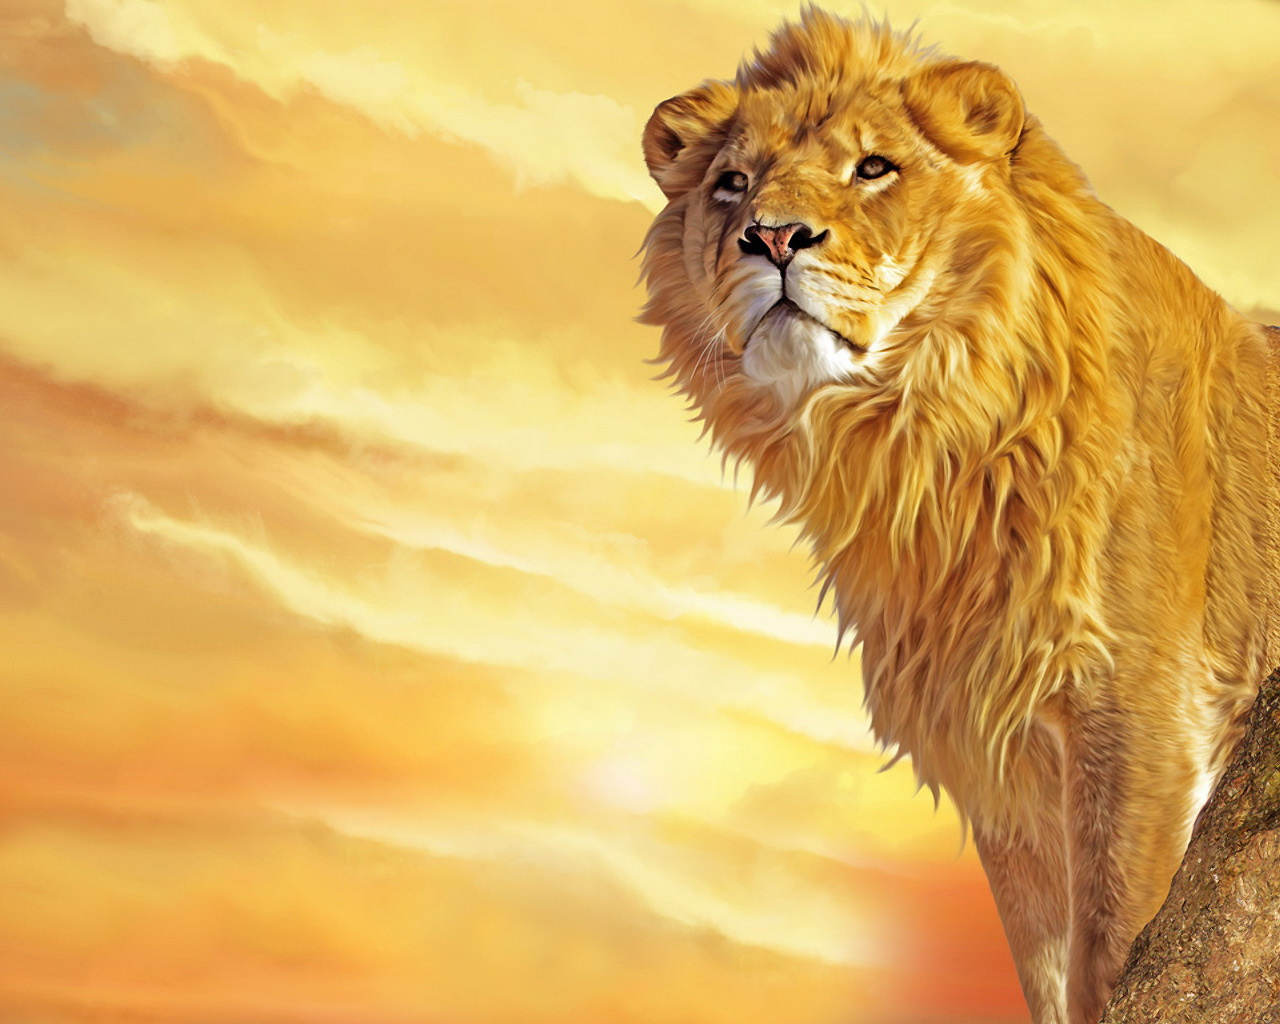 Hd Lion King Wallpaper: Lion HD Wallpapers African Lions Pictures